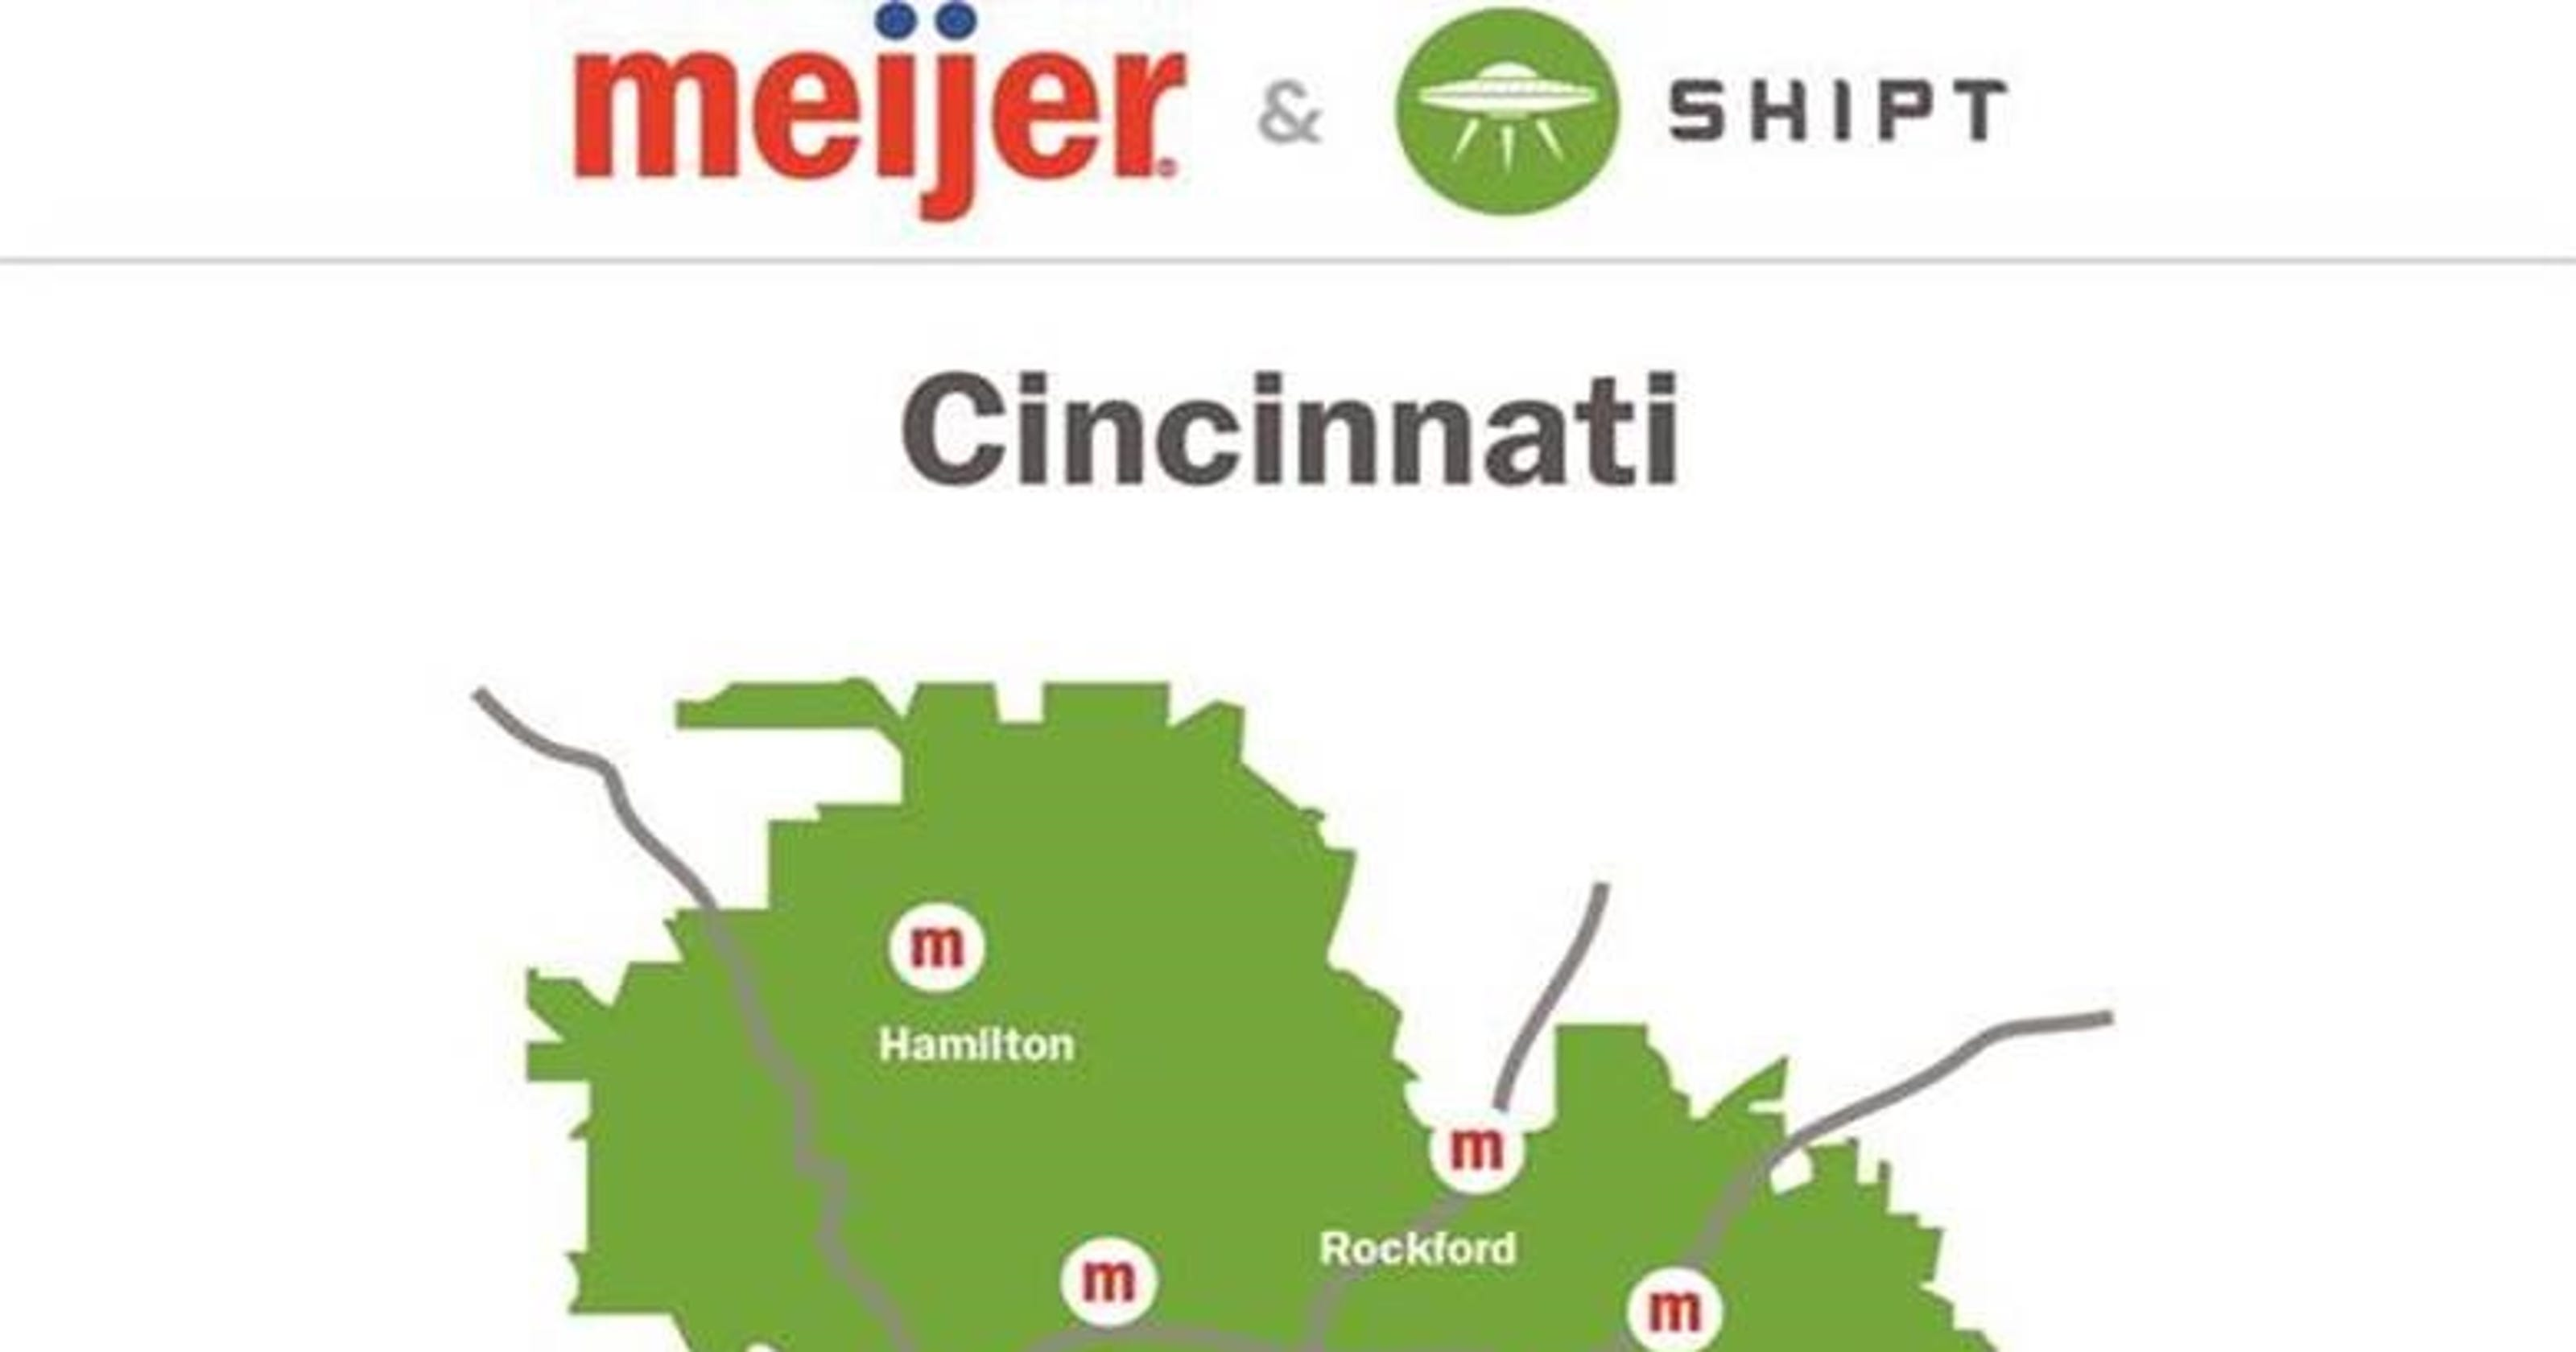 Want groceries delivered? Here are your options in Greater Cincinnati